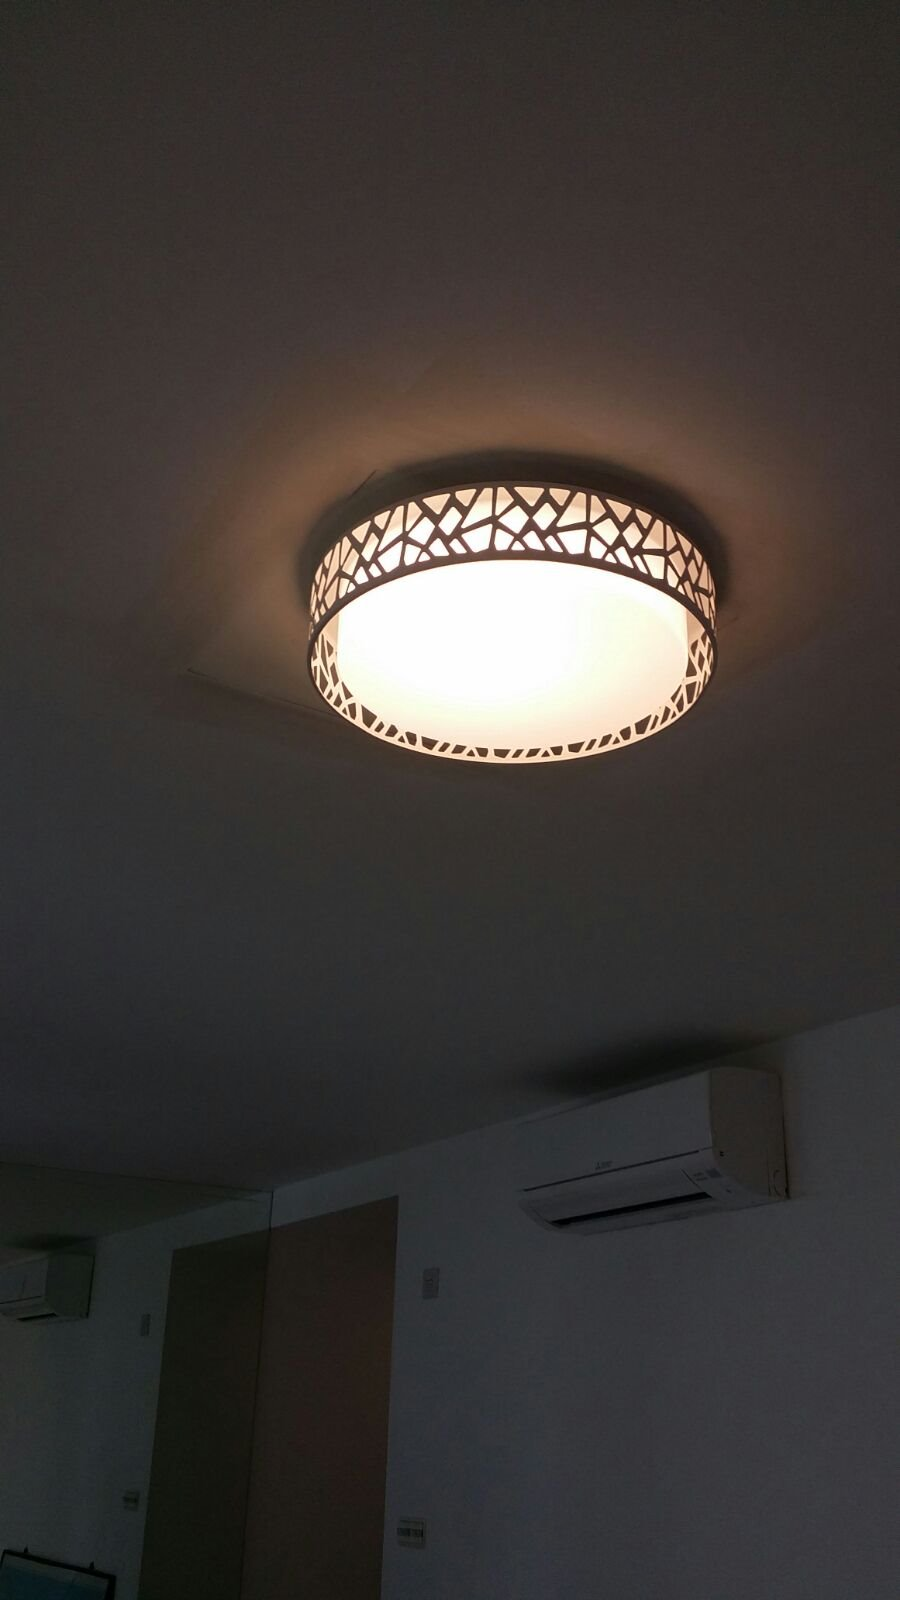 IMG-20171215-WA0038  - LED ceiling light